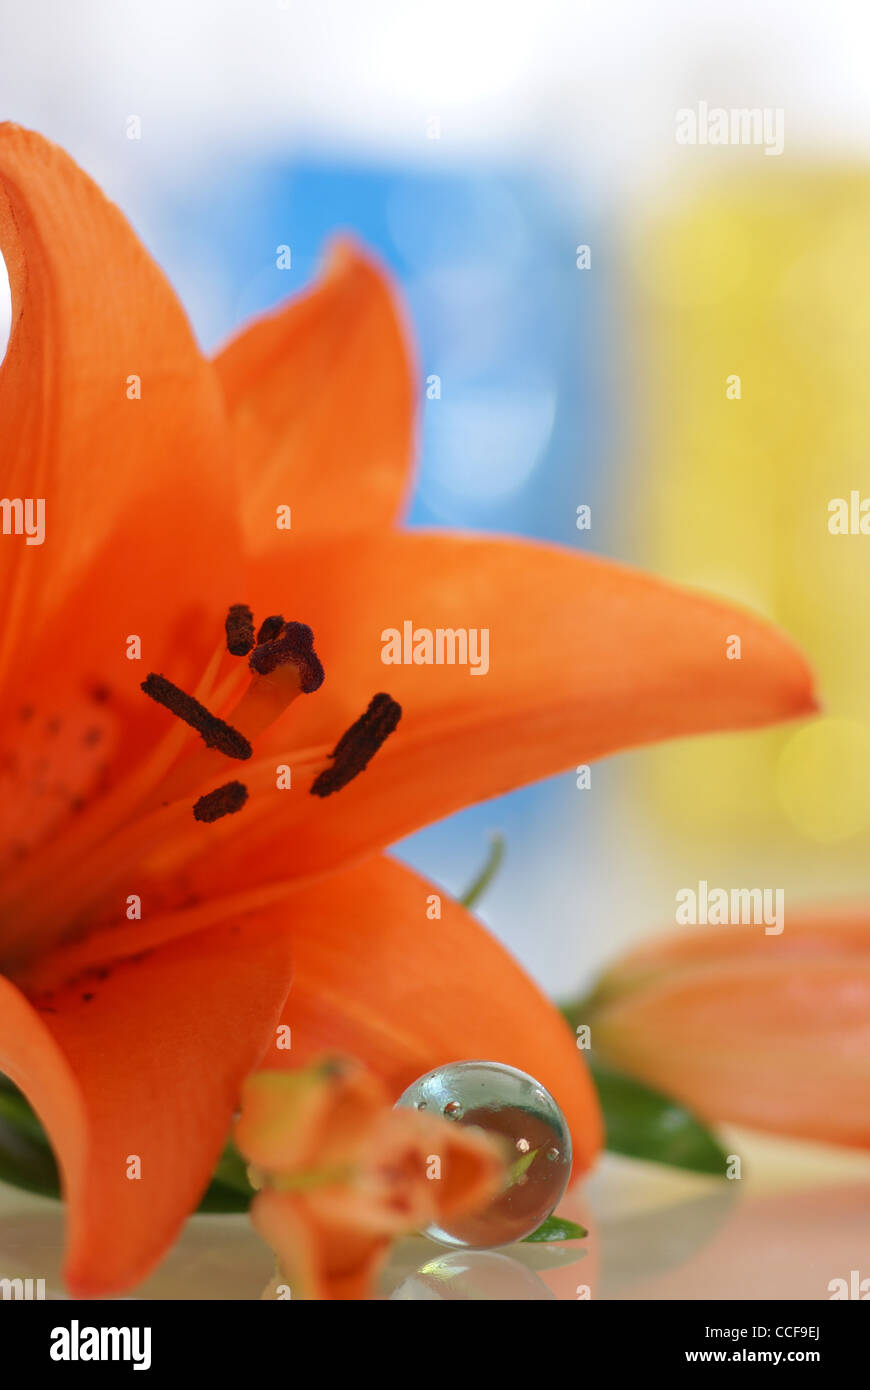 orange lily with a remedies for aroma therapy in spa - Stock Image